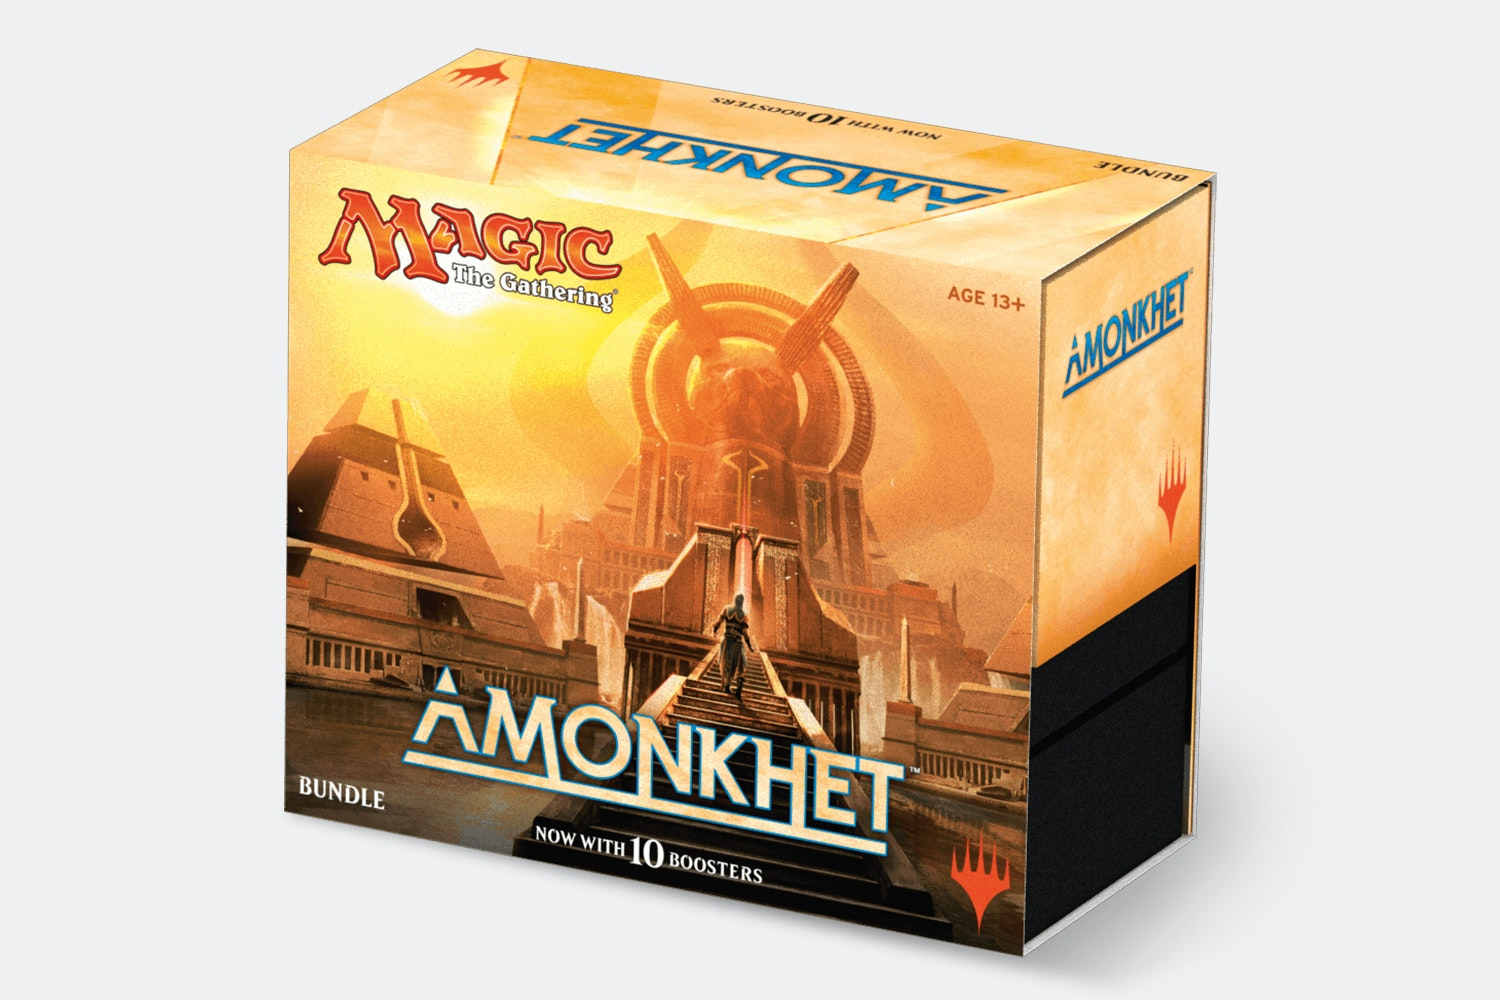 Amonkhet Fat Pack (Preorder)